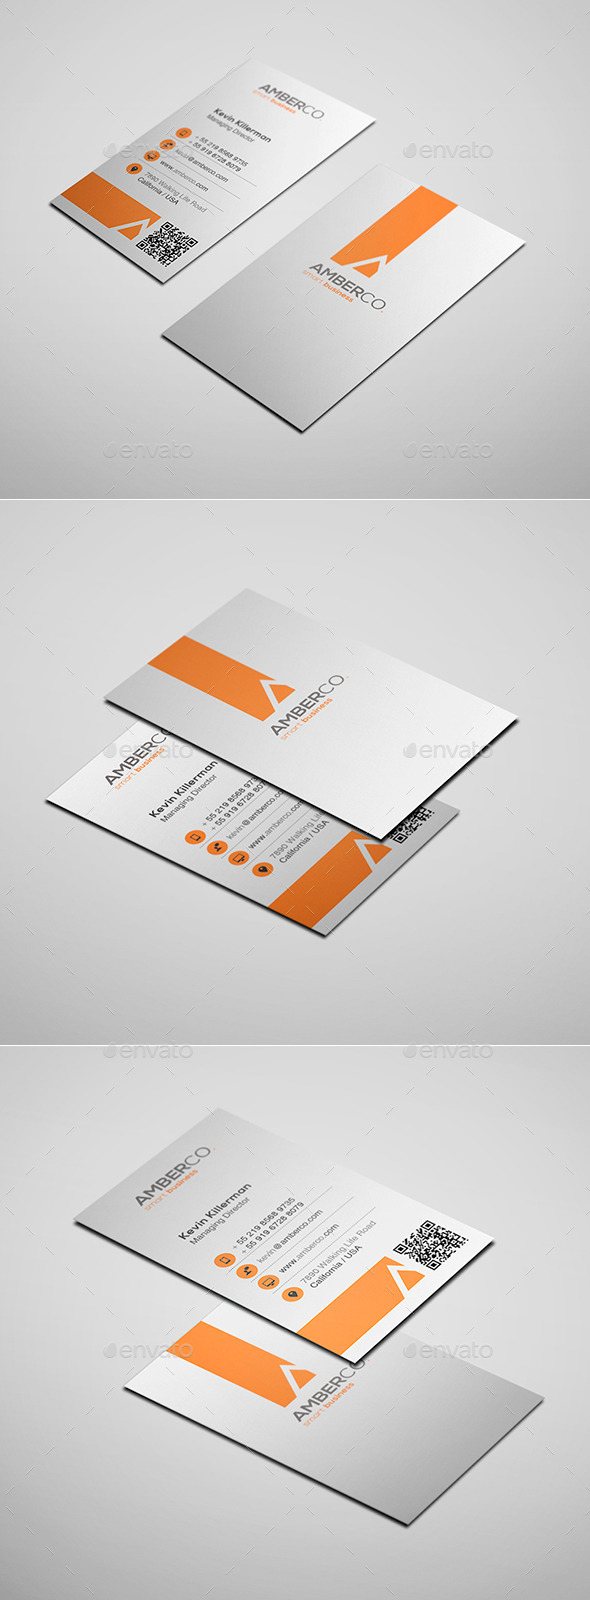 GraphicRiver Business Card Vol 09 11546812